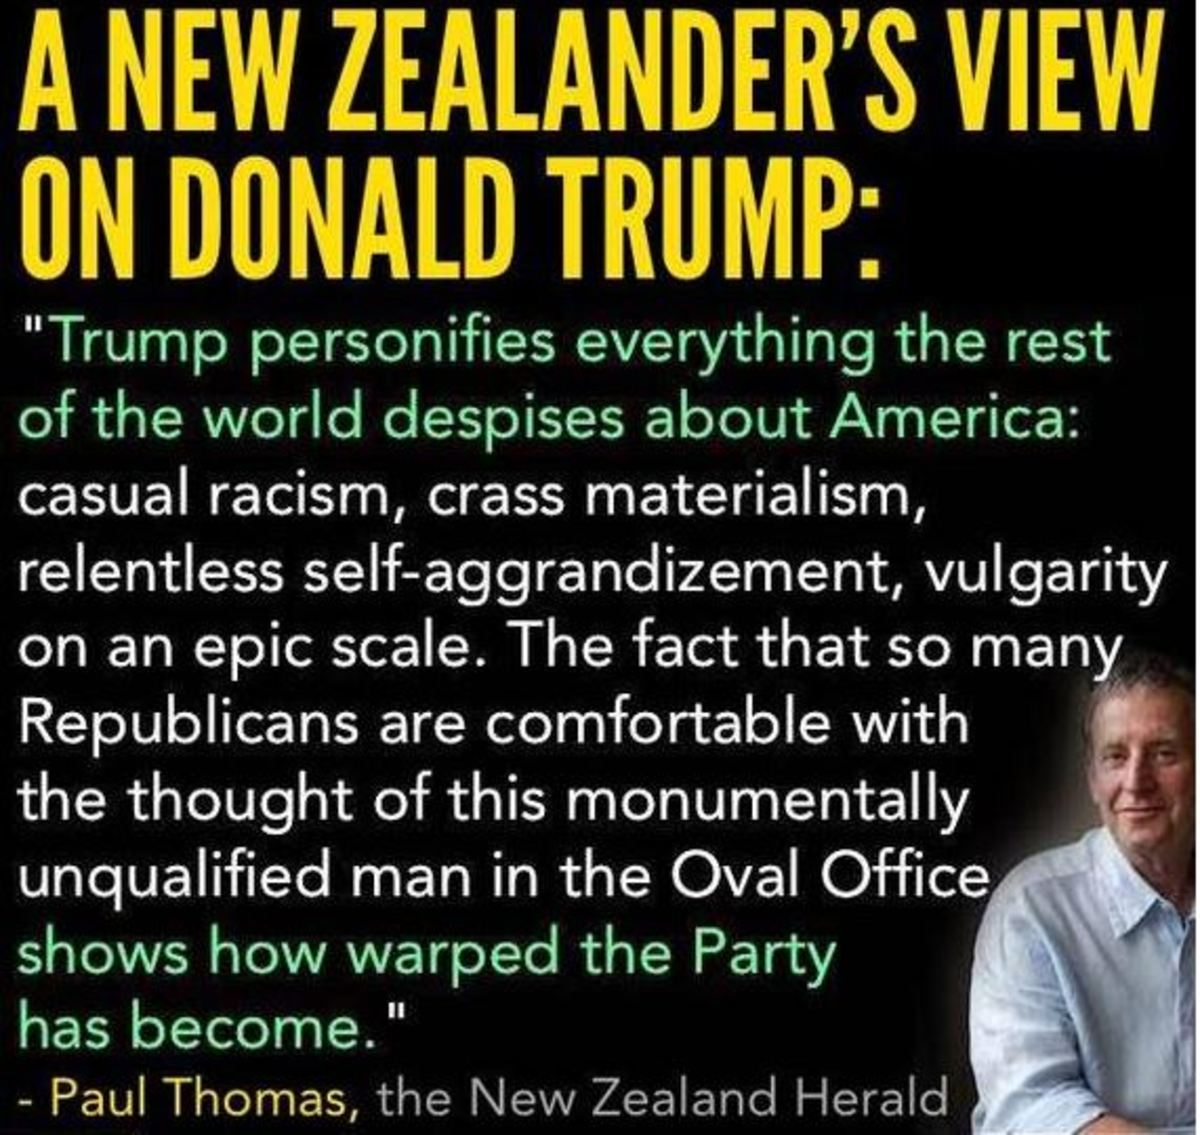 Trump believes in American exceptionalism and lauds himself as a prime example.